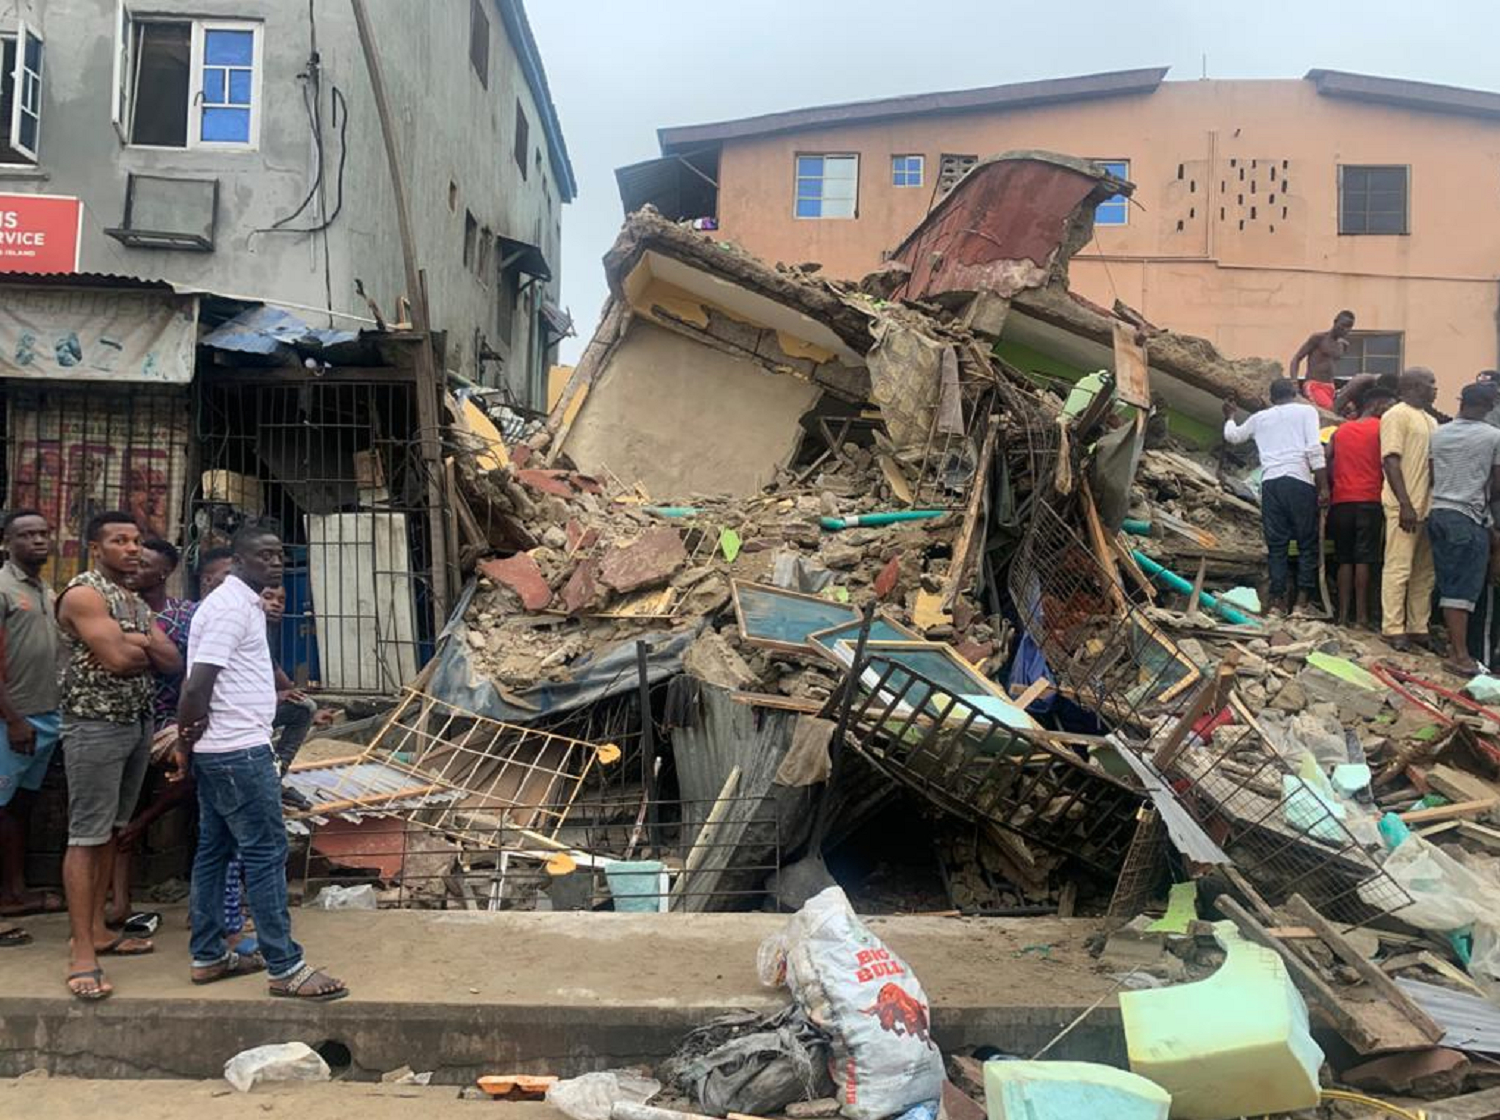 Residents evicted from distressed buildings find their way back, says Lagos Commissioner